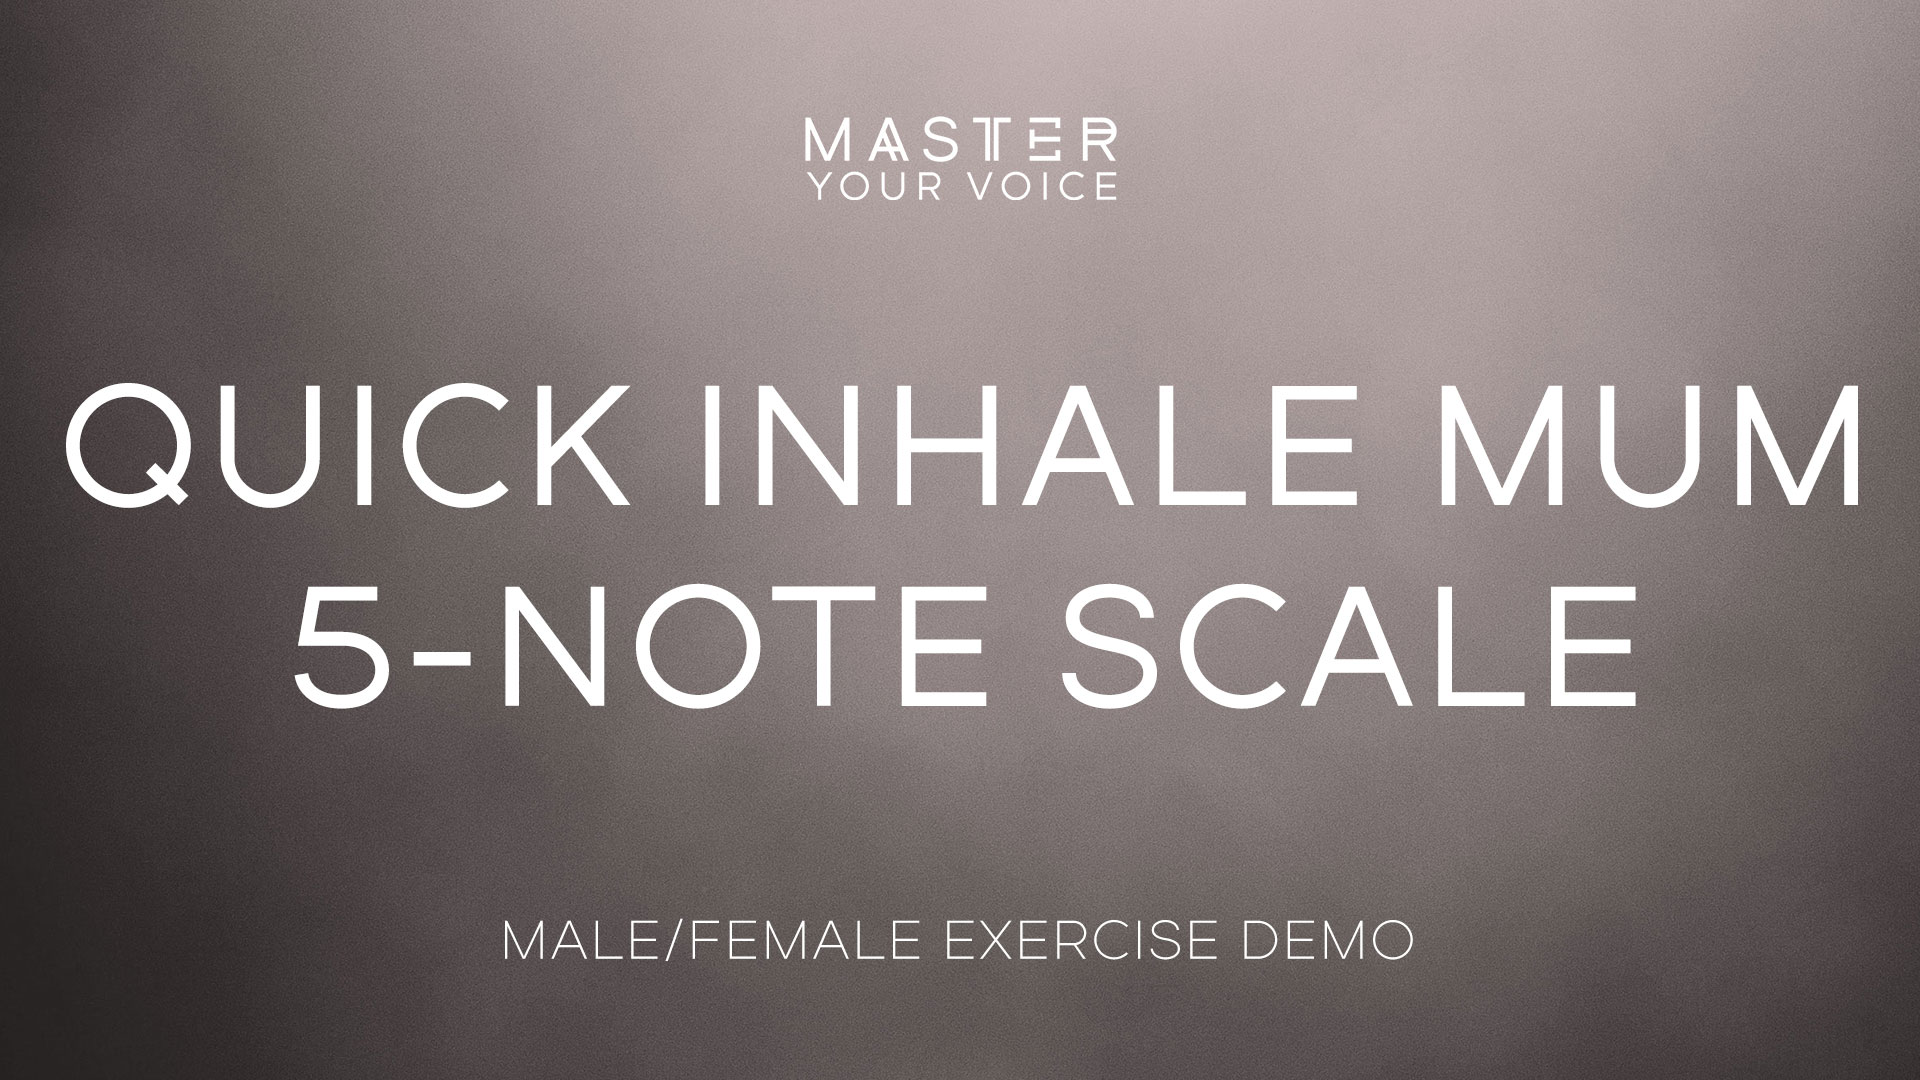 Quick Inhale Mum 5-Note Scale Exercise Demo